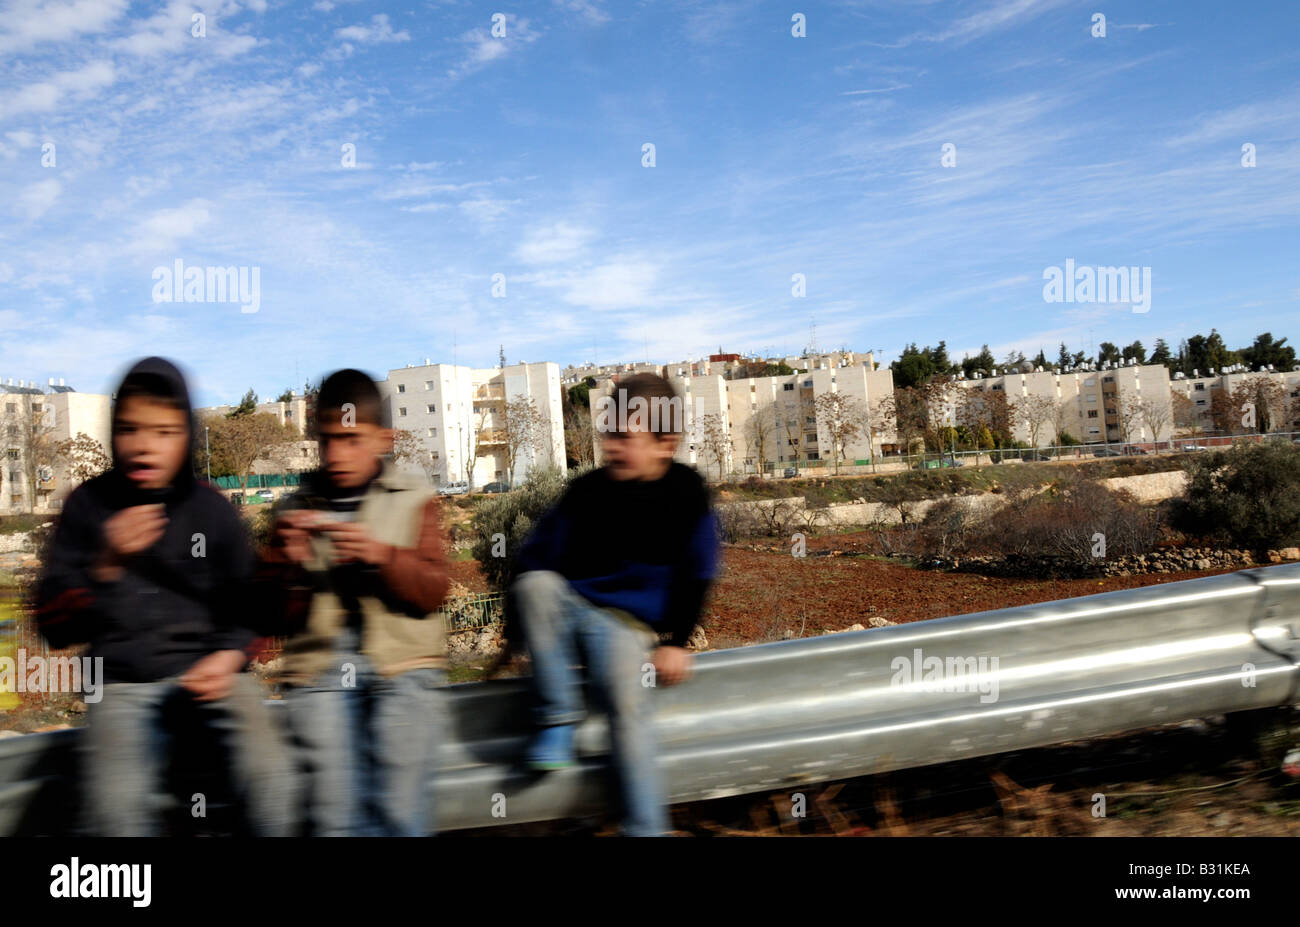 Three Palestinian children sit by the side of a major road in the West Bank- in the Gush Etzion region. - Stock Image